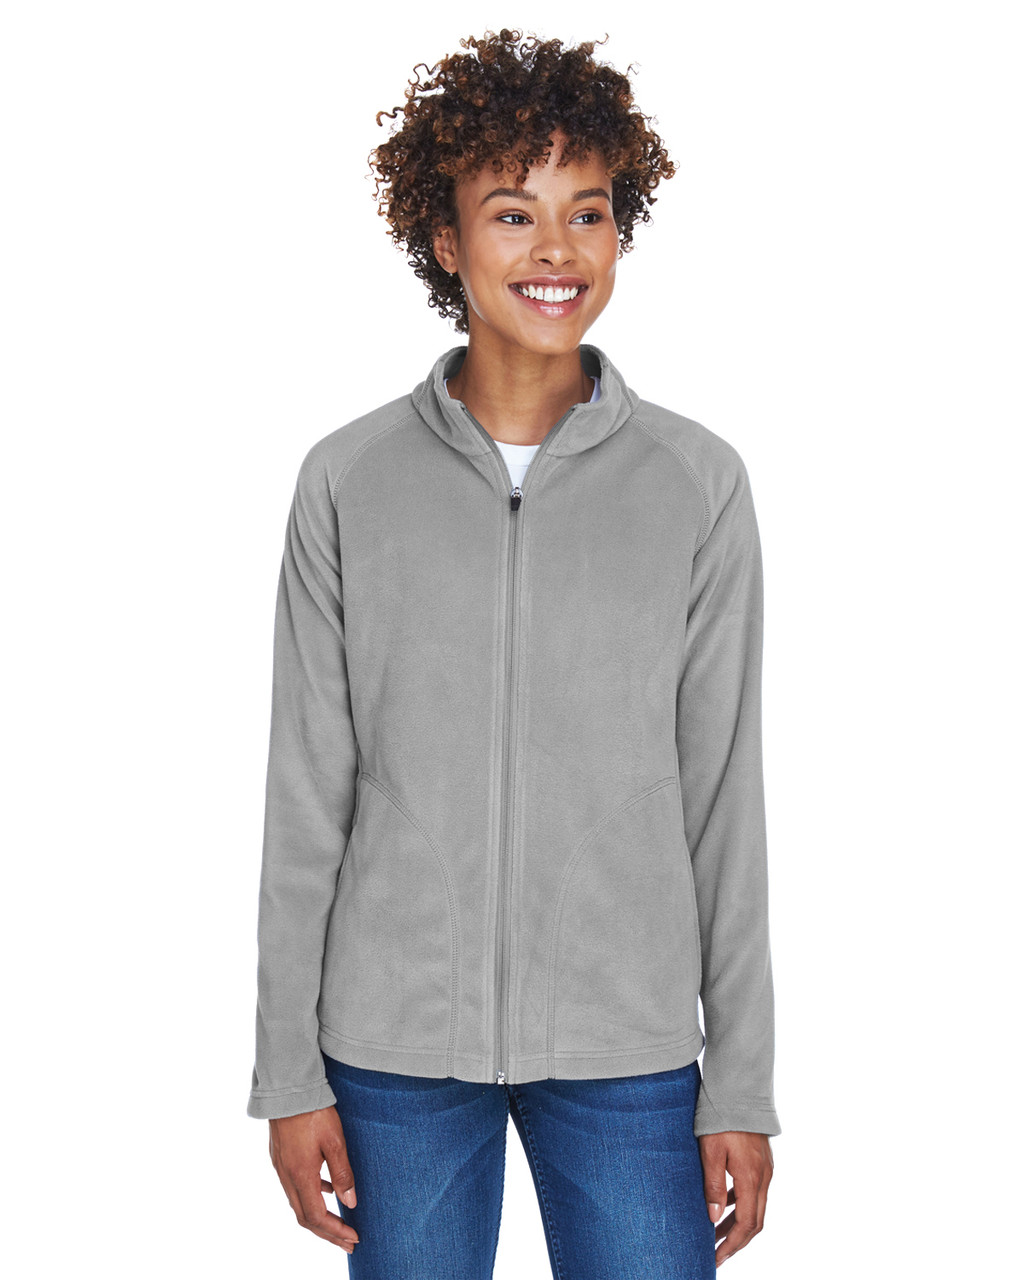 Sport Graphite - TT90W Team 365 Ladies' Campus Microfleece Jacket | BlankClothing.ca